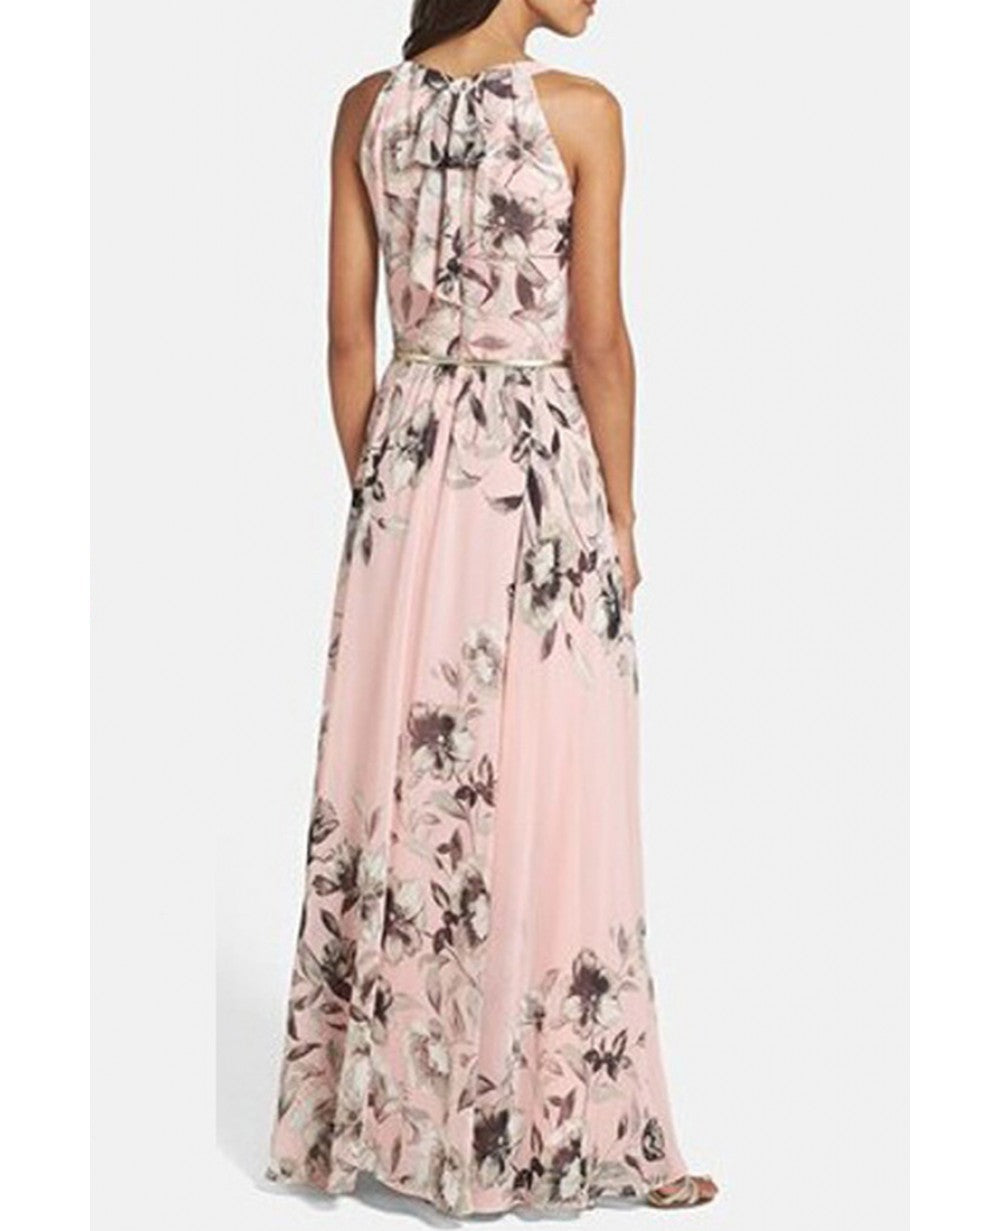 Summer Charming Floral Printed Sleeveless Long Party Maxi Dress